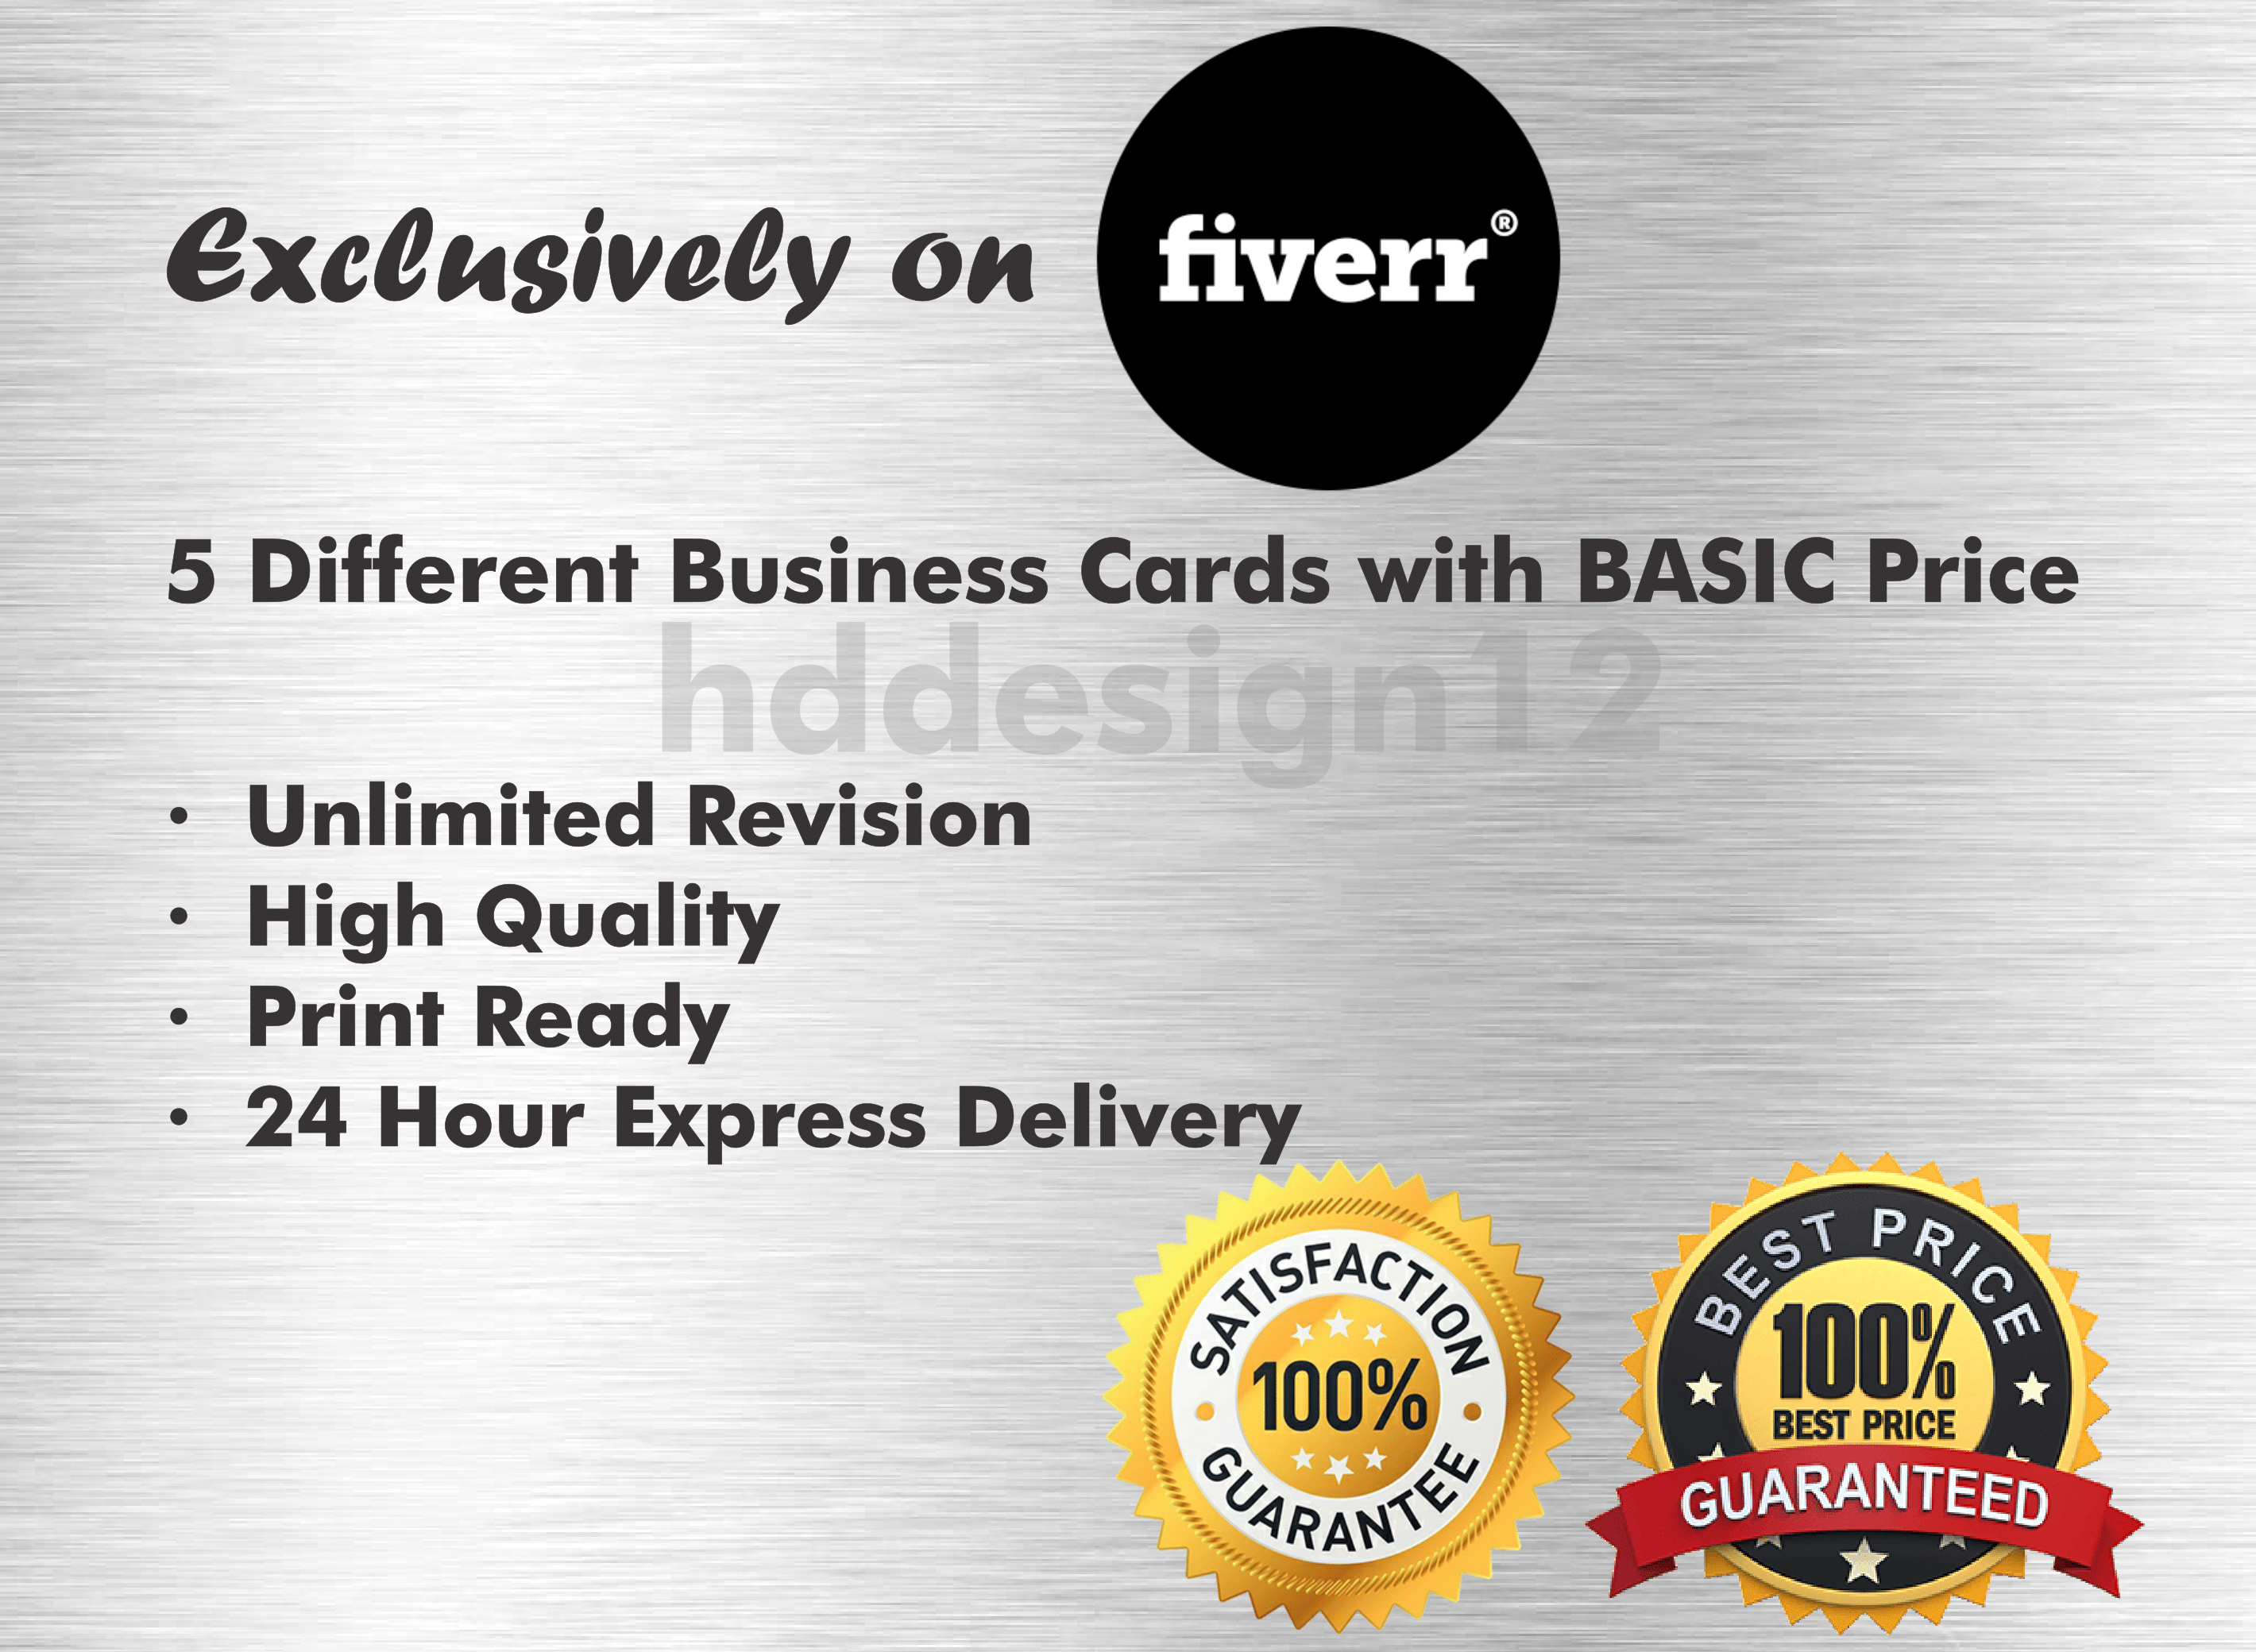 Design 3 different amazing business cards with basic price by Hddesign12